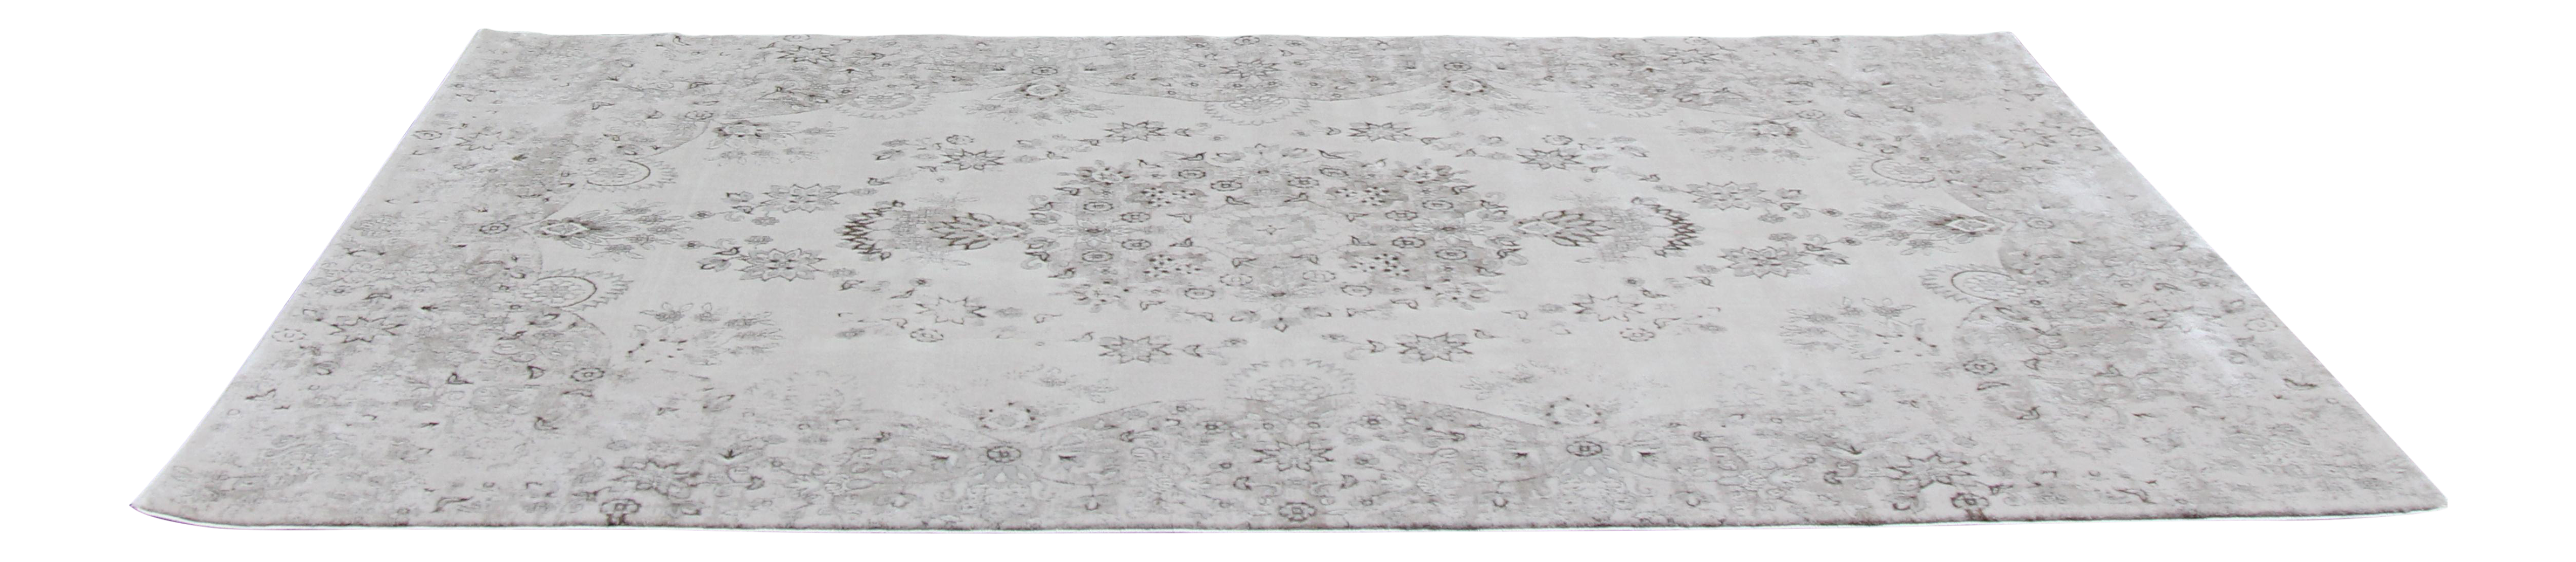 carpet rug png image collection download #27269